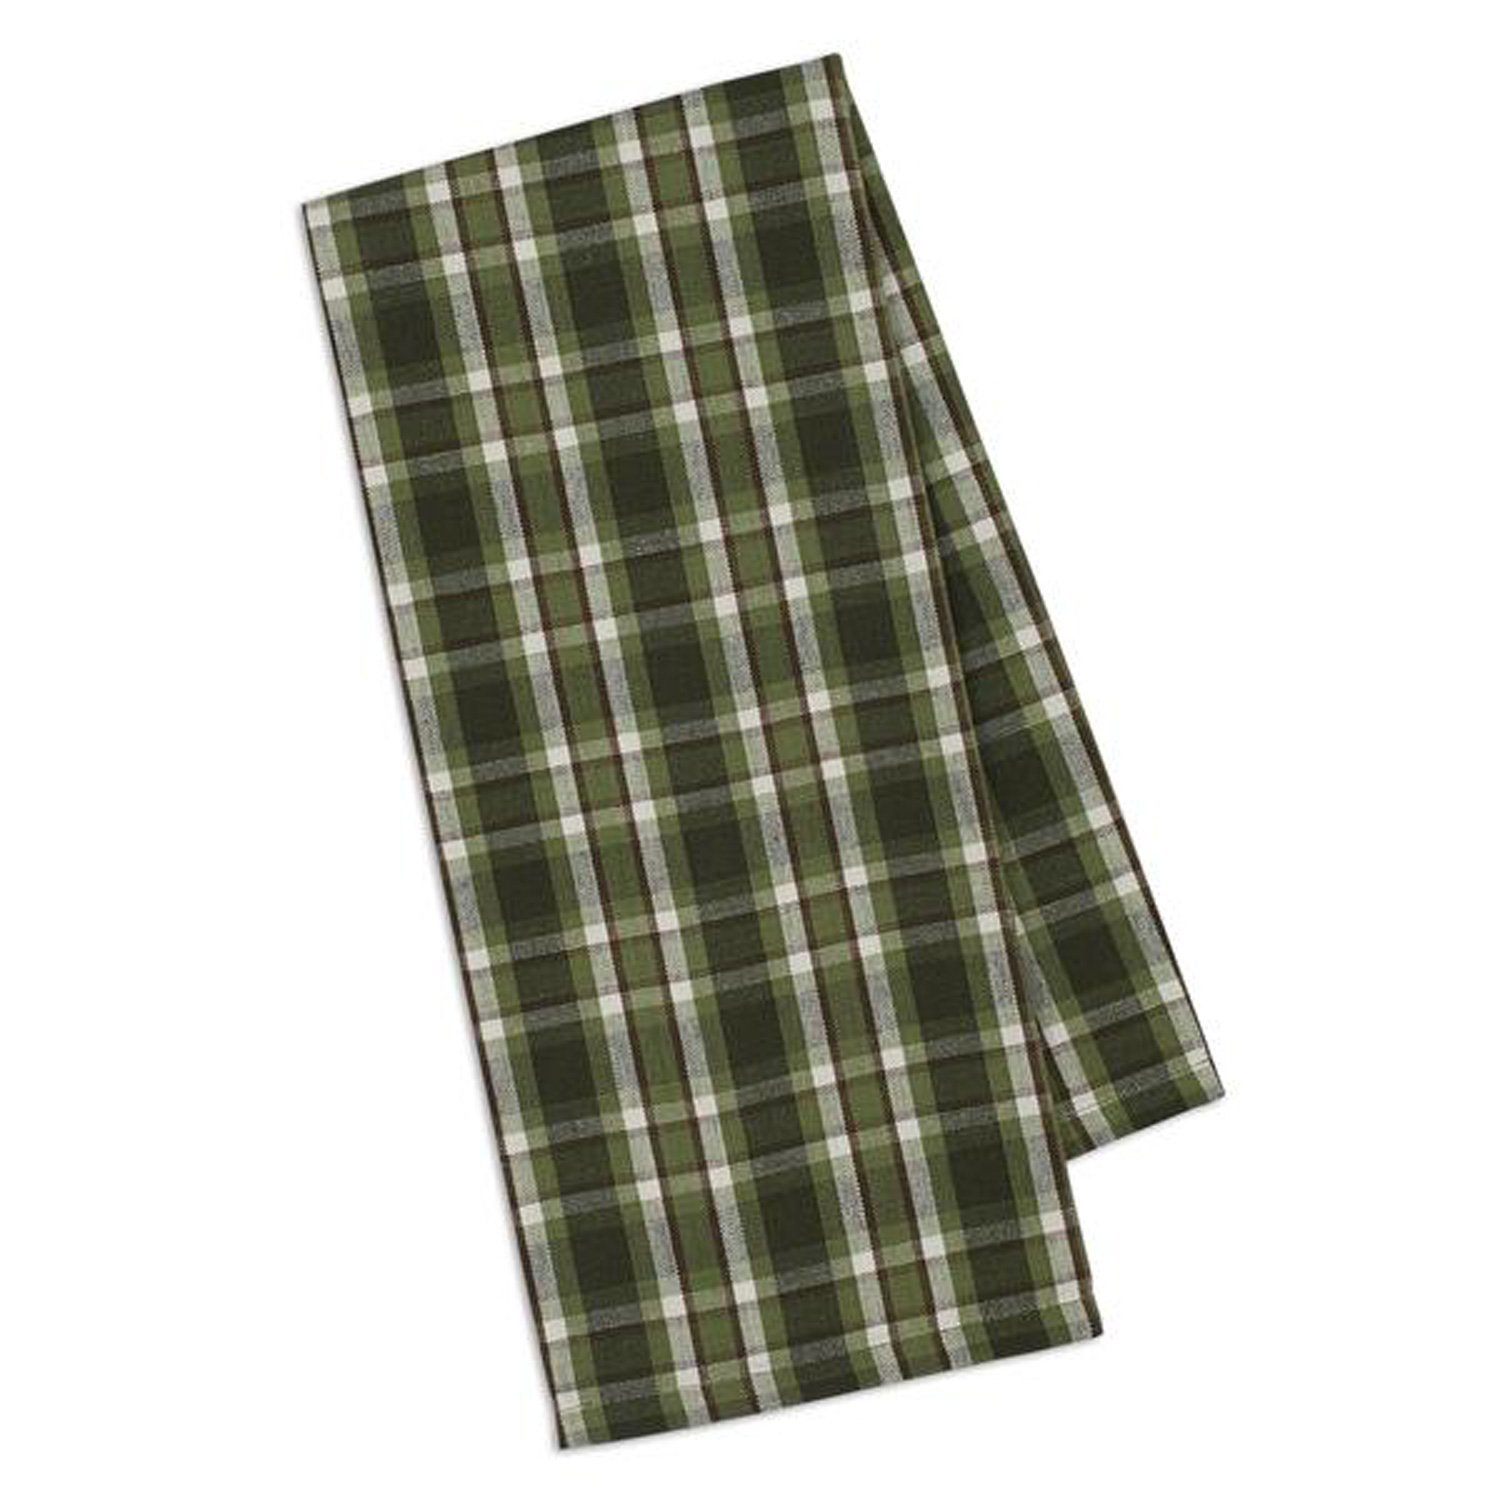 Design Imports Mountain Pine Cotton Table Linens, Dishtowel 18-Inch by 28-Inch, Cascade Plaid